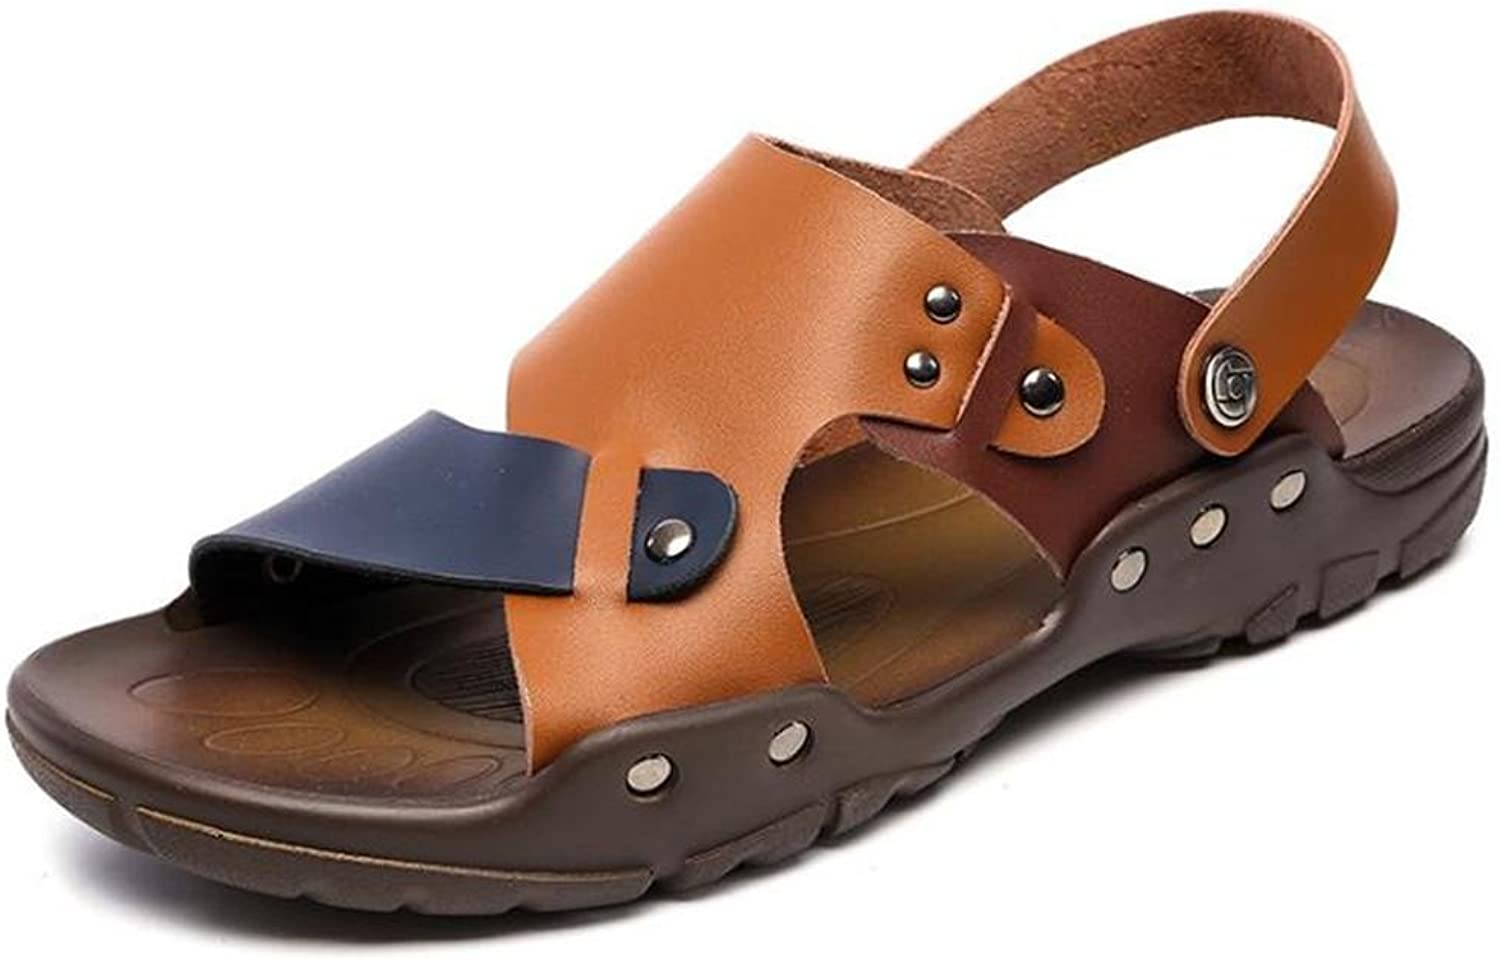 Men shoes Genuine Leather Rivet Sandals Beach Summer Open Toe Pull on Slipper Breathable Non-Slip Size 38 To 43